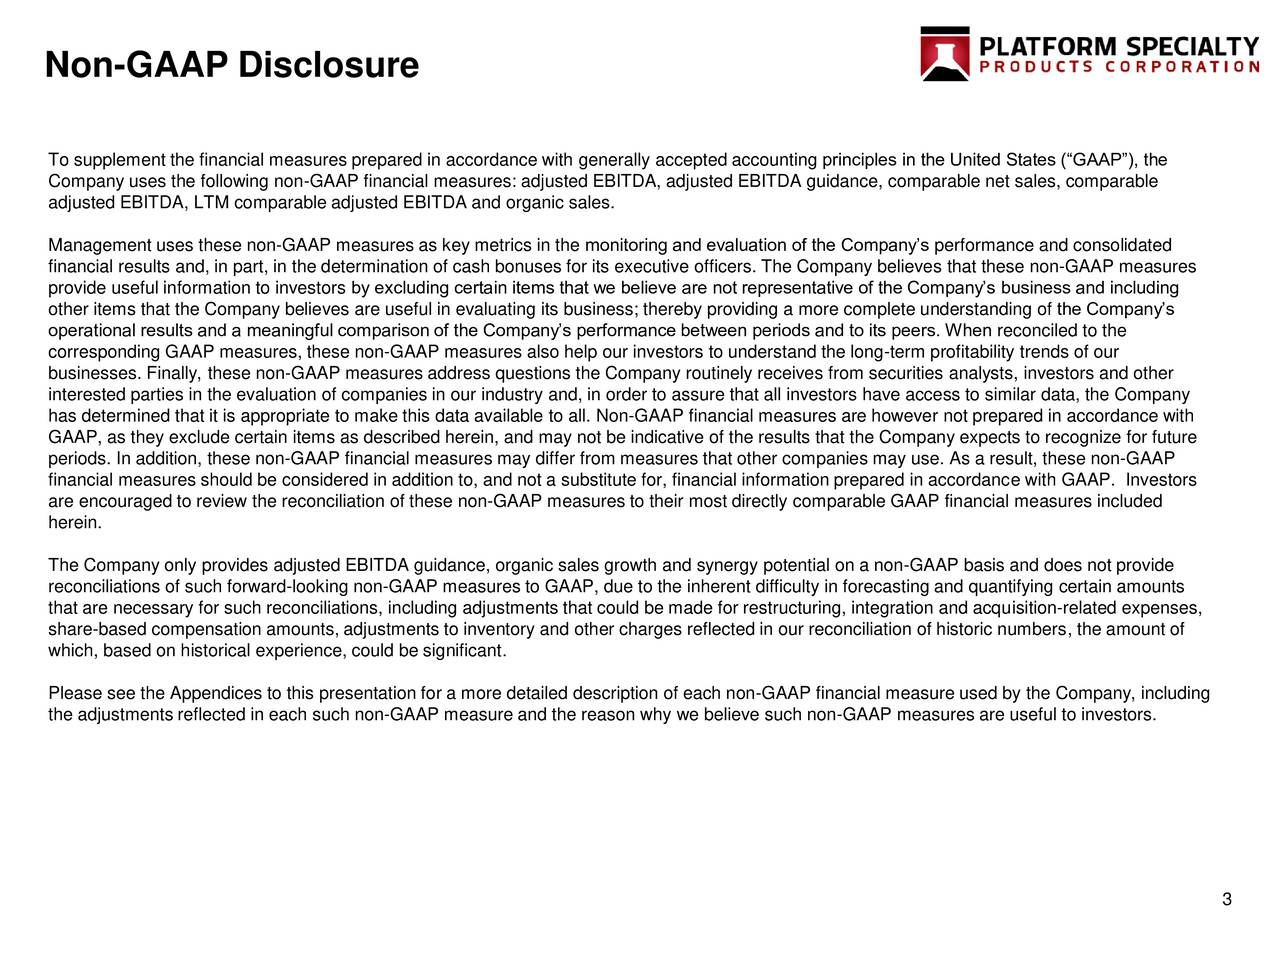 To supplement the financial measures prepared in accordance with generally accepted accounting principles in the United States (GAAP), the Company uses the following non-GAAP financial measures: adjusted EBITDA, adjusted EBITDA guidance, comparable net sales, comparable adjusted EBITDA, LTM comparable adjusted EBITDA and organic sales. Management uses these non-GAAP measures as key metrics in the monitoring and evaluation of the Companys performance and consolidated financial results and, in part, in the determination of cash bonuses for its executive officers. The Company believes that these non-GAAP measures provide useful information to investors by excluding certain items that we believe are not representative of the Companys business and including other items that the Company believes are useful in evaluating its business; thereby providing a more complete understanding of the Companys operational results and a meaningful comparison of the Companys performance between periods and to its peers. When reconciled to the corresponding GAAP measures, these non-GAAP measures also help our investors to understand the long-term profitability trends of our businesses. Finally, these non-GAAP measures address questions the Company routinely receives from securities analysts, investors and other interested parties in the evaluation of companies in our industry and, in order to assure that all investors have access to similar data, the Company has determined that it is appropriate to make this data available to all. Non-GAAP financial measures are however not prepared in accordance with GAAP, as they exclude certain items as described herein, and may not be indicative of the results that the Company expects to recognize for future periods. In addition, these non-GAAP financial measures may differ from measures that other companies may use. As a result, these non-GAAP financial measures should be considered in addition to, and not a substitute for, financial information prep